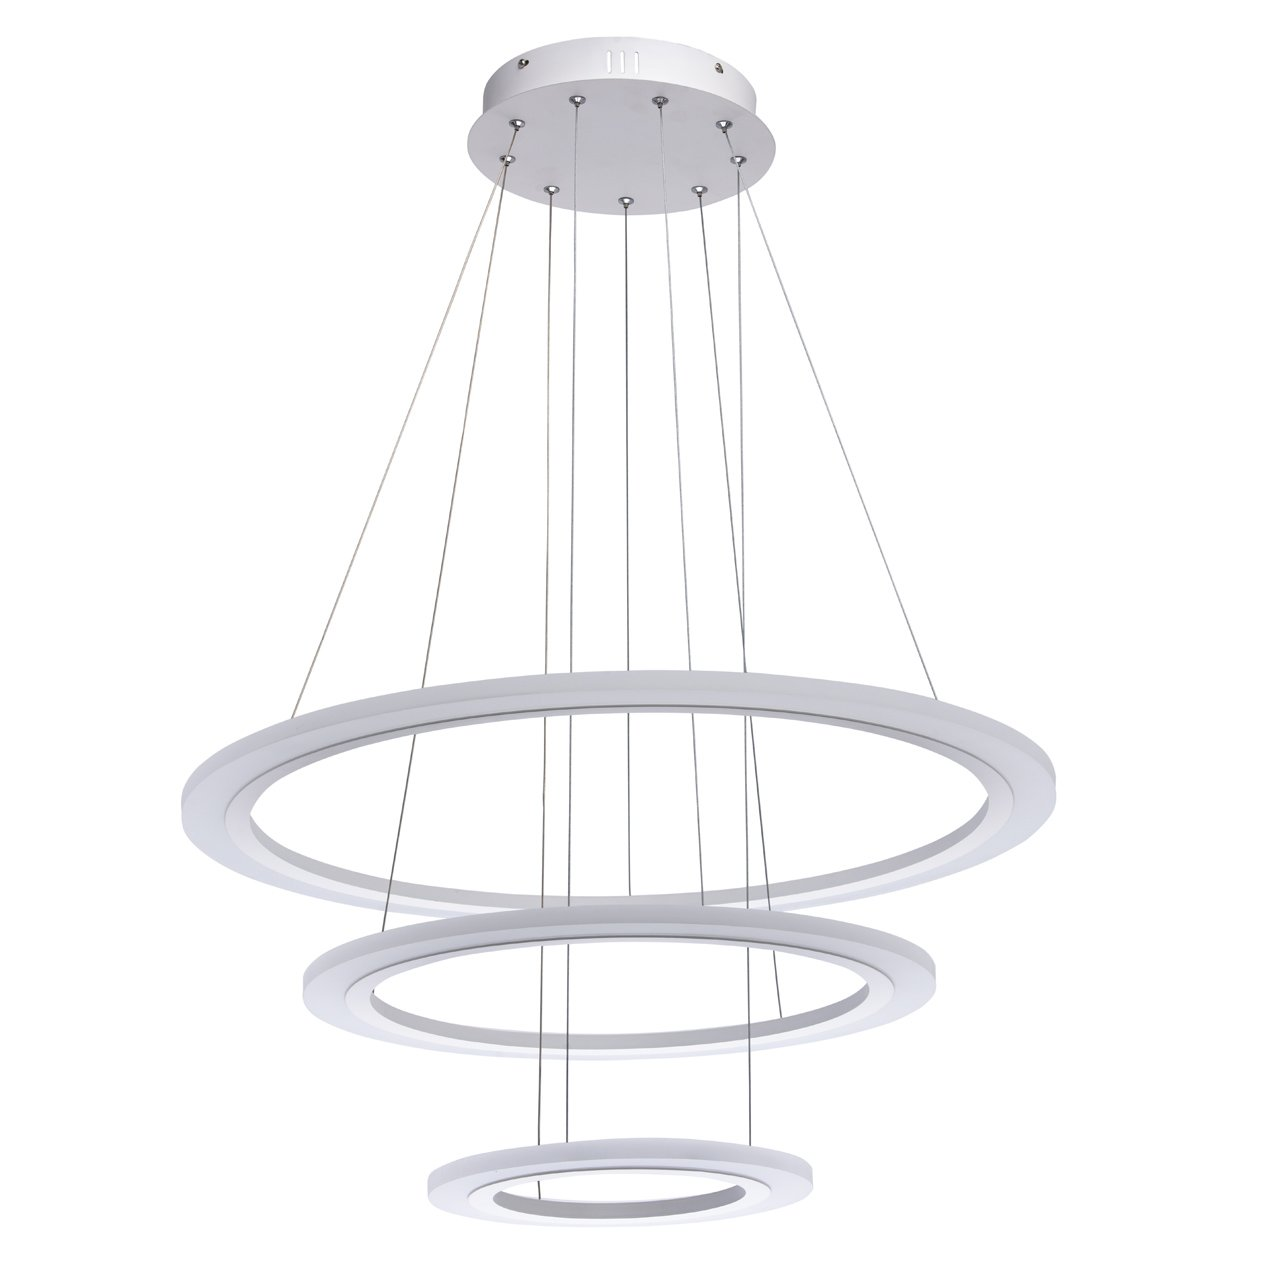 Regenbogen 661014703 Lustre Suspension 3 Cercles Originale